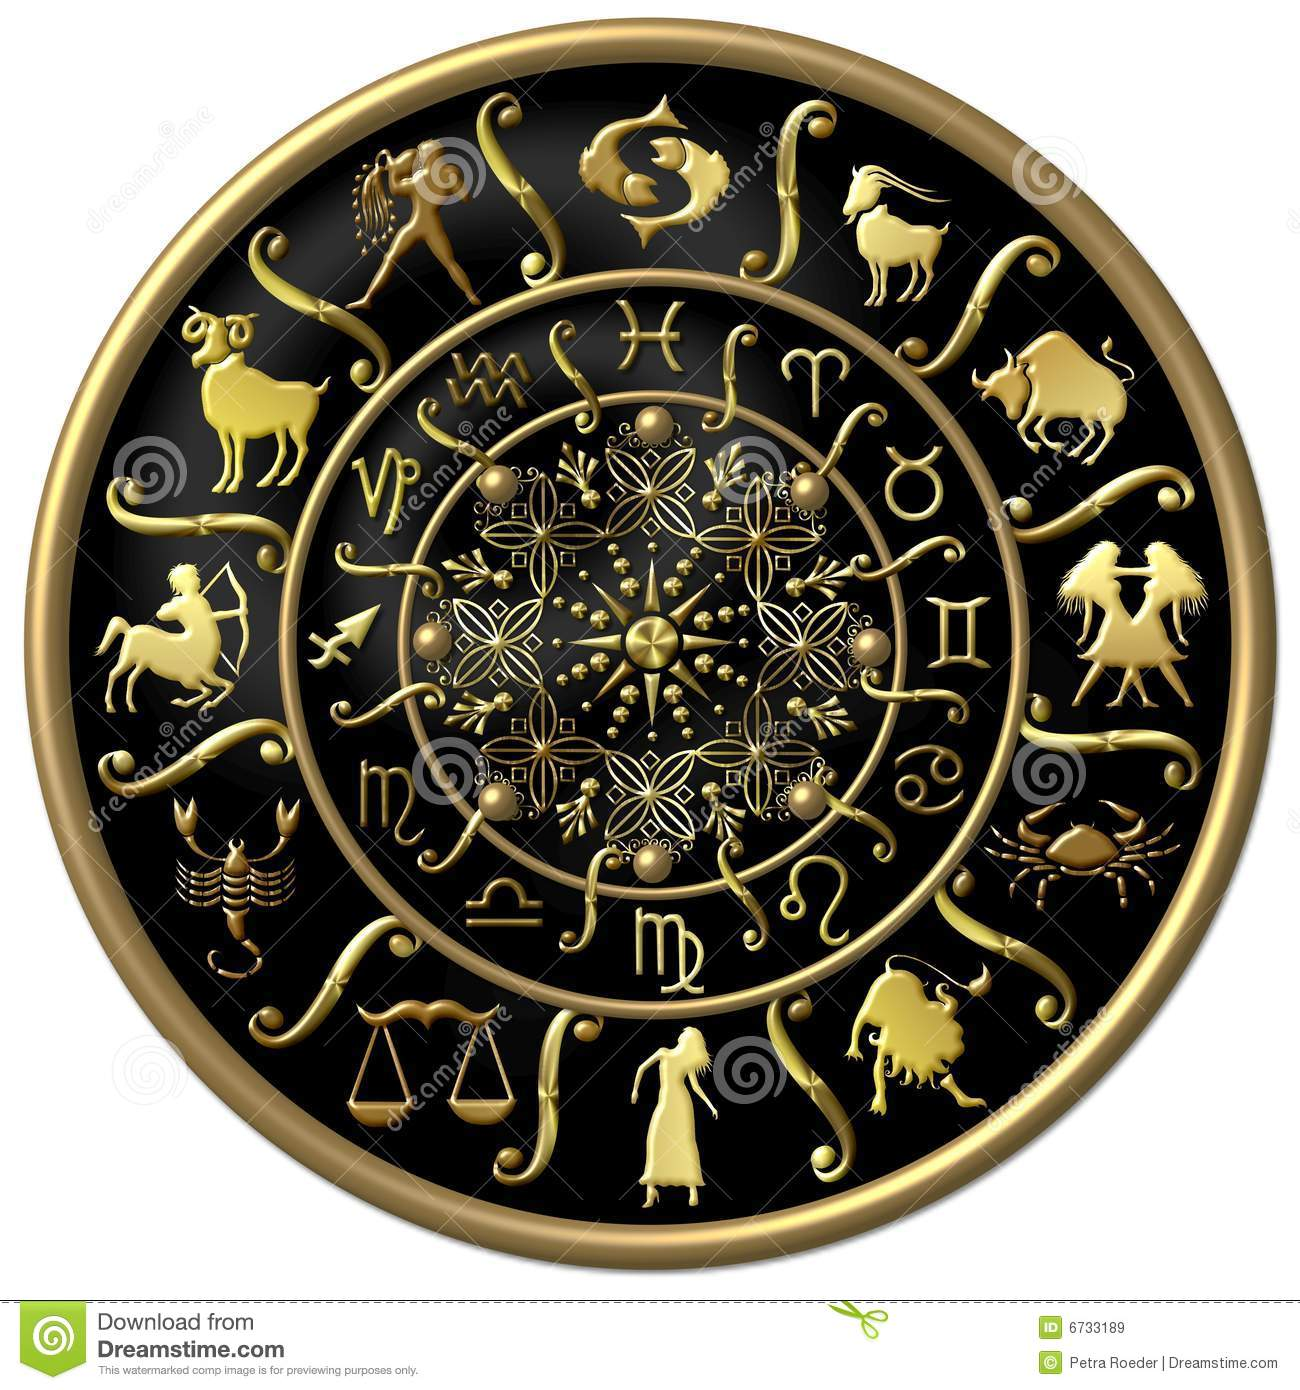 Black And Gold Zodiac Disc Royalty Free Stock Images - Image: 6733189